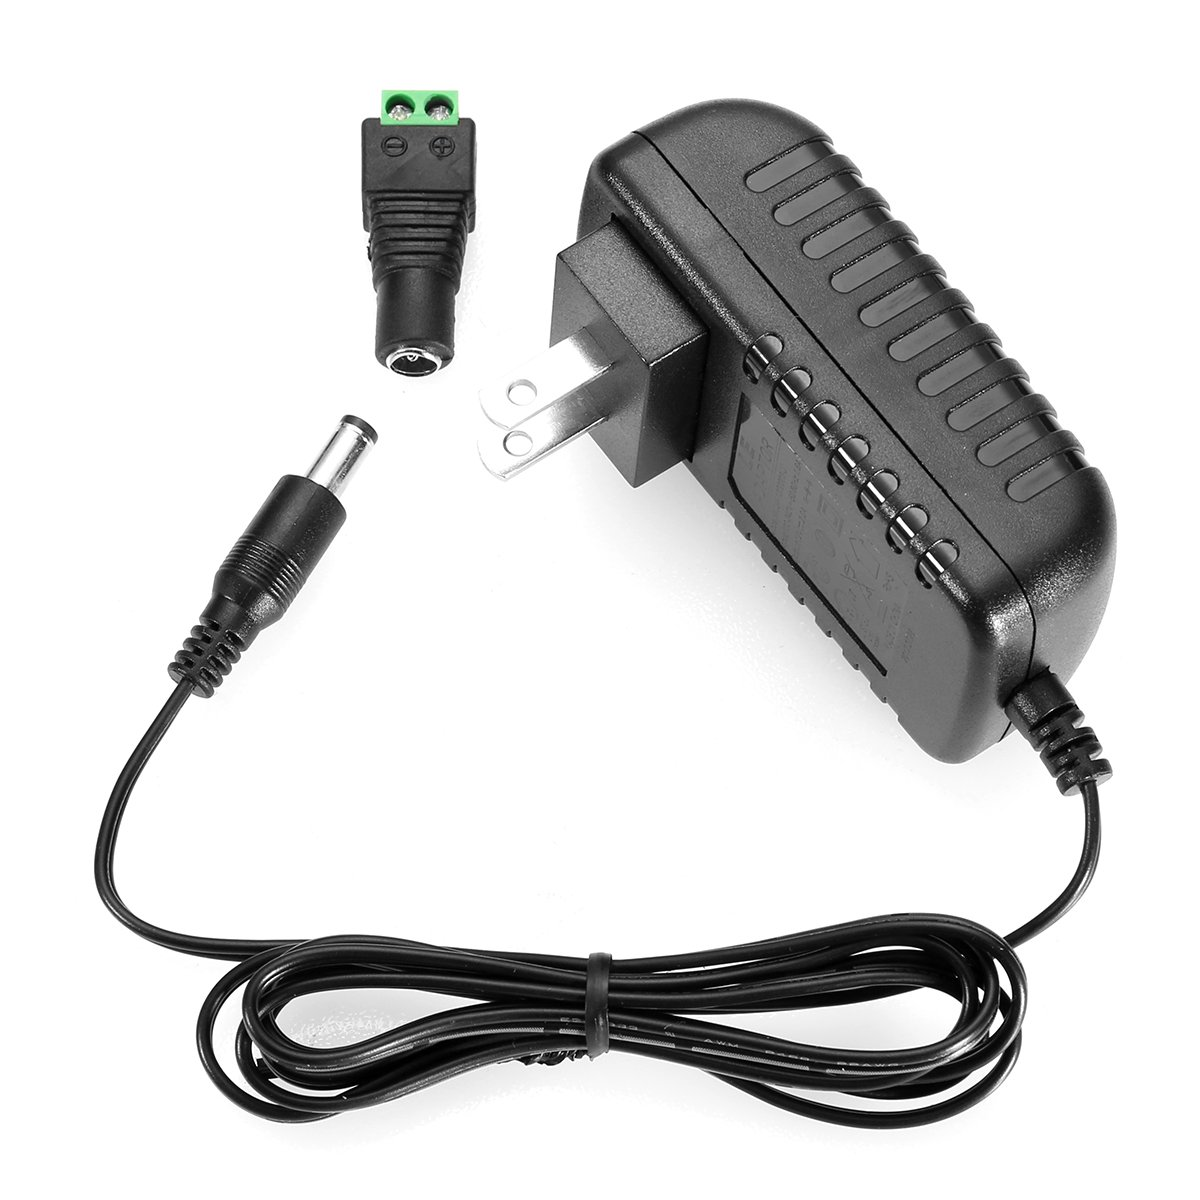 Cheap 12v 1 Amp Adapter Find Deals On Line At 15 Volt Regulated Power Supply Get Quotations Le Dc 2a Ac 100 240v To Transformers